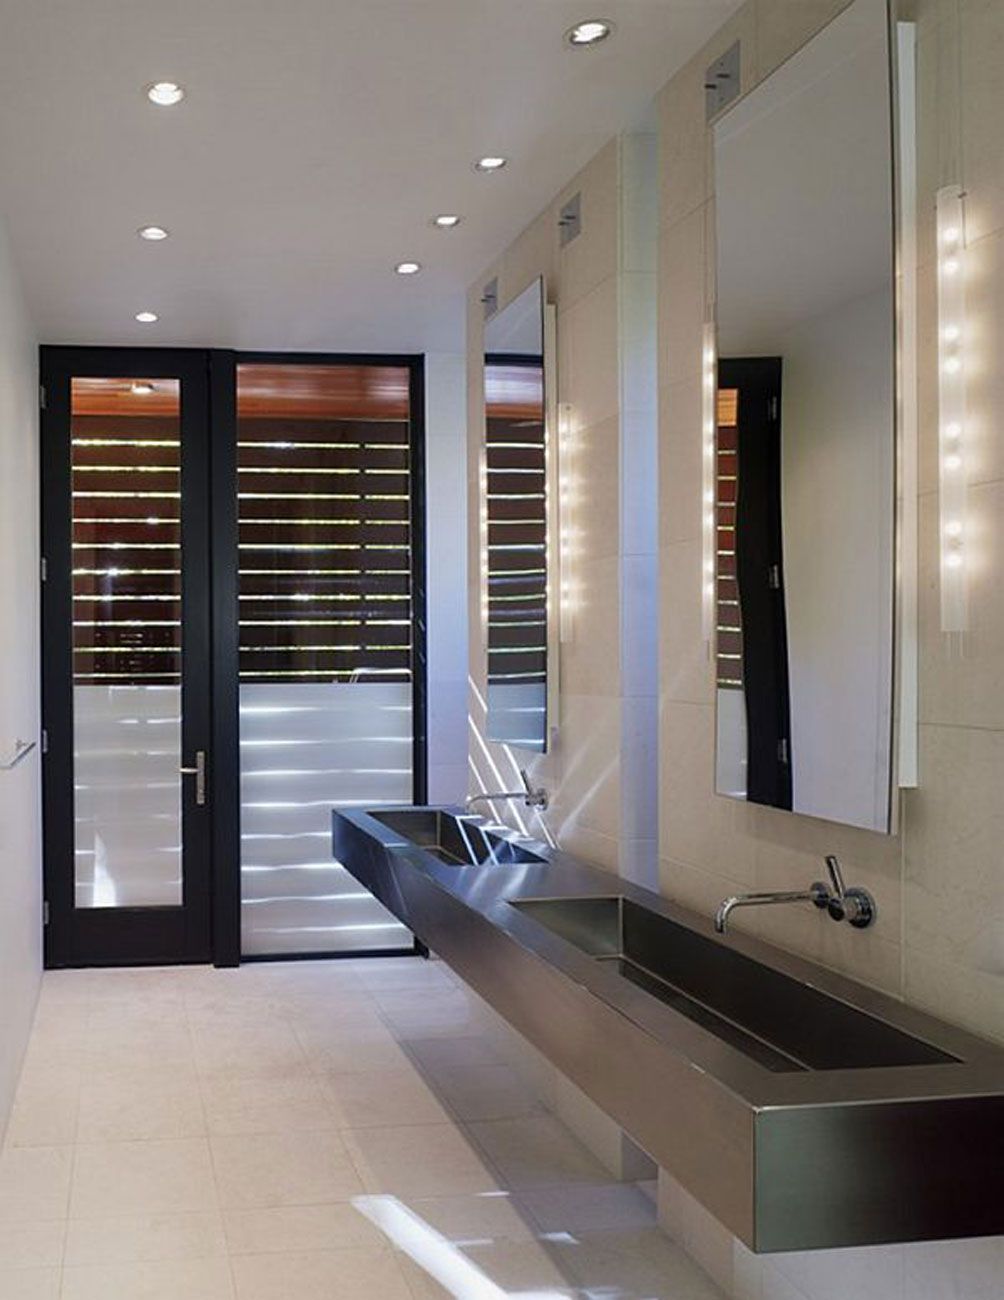 The Harkavy Residence, Wooden House Inspiration by Robert Gurney Architect - Bathroom